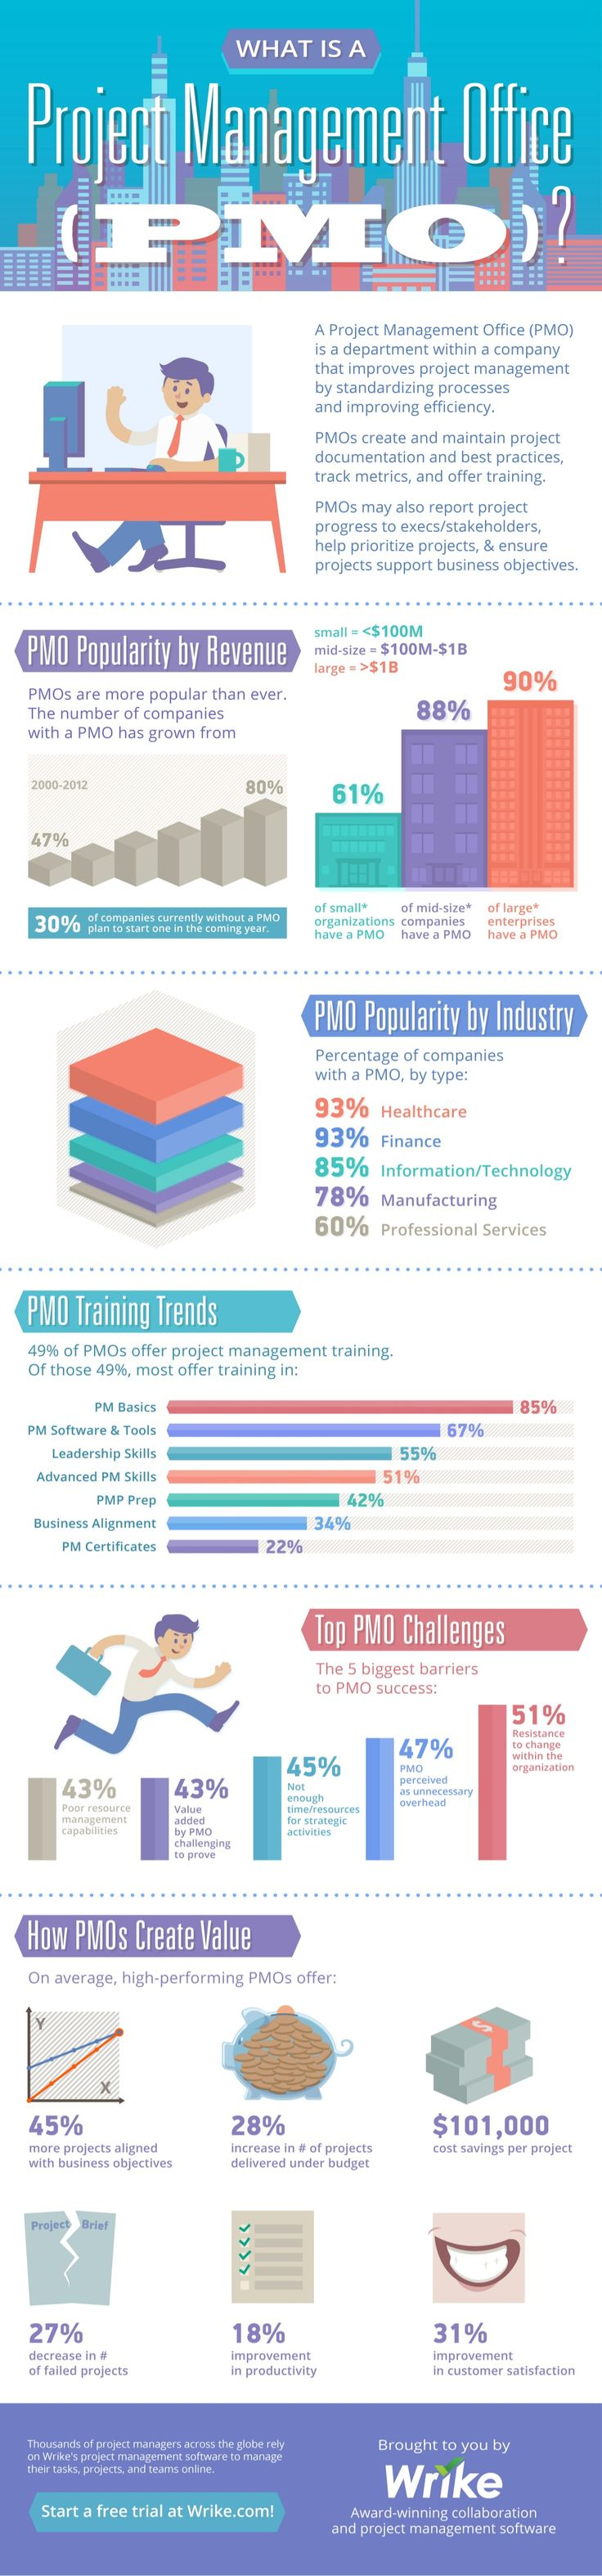 113 best pmo images on pinterest achieve success conference and what is a pmo project management office by wrike via tipsographic xflitez Choice Image